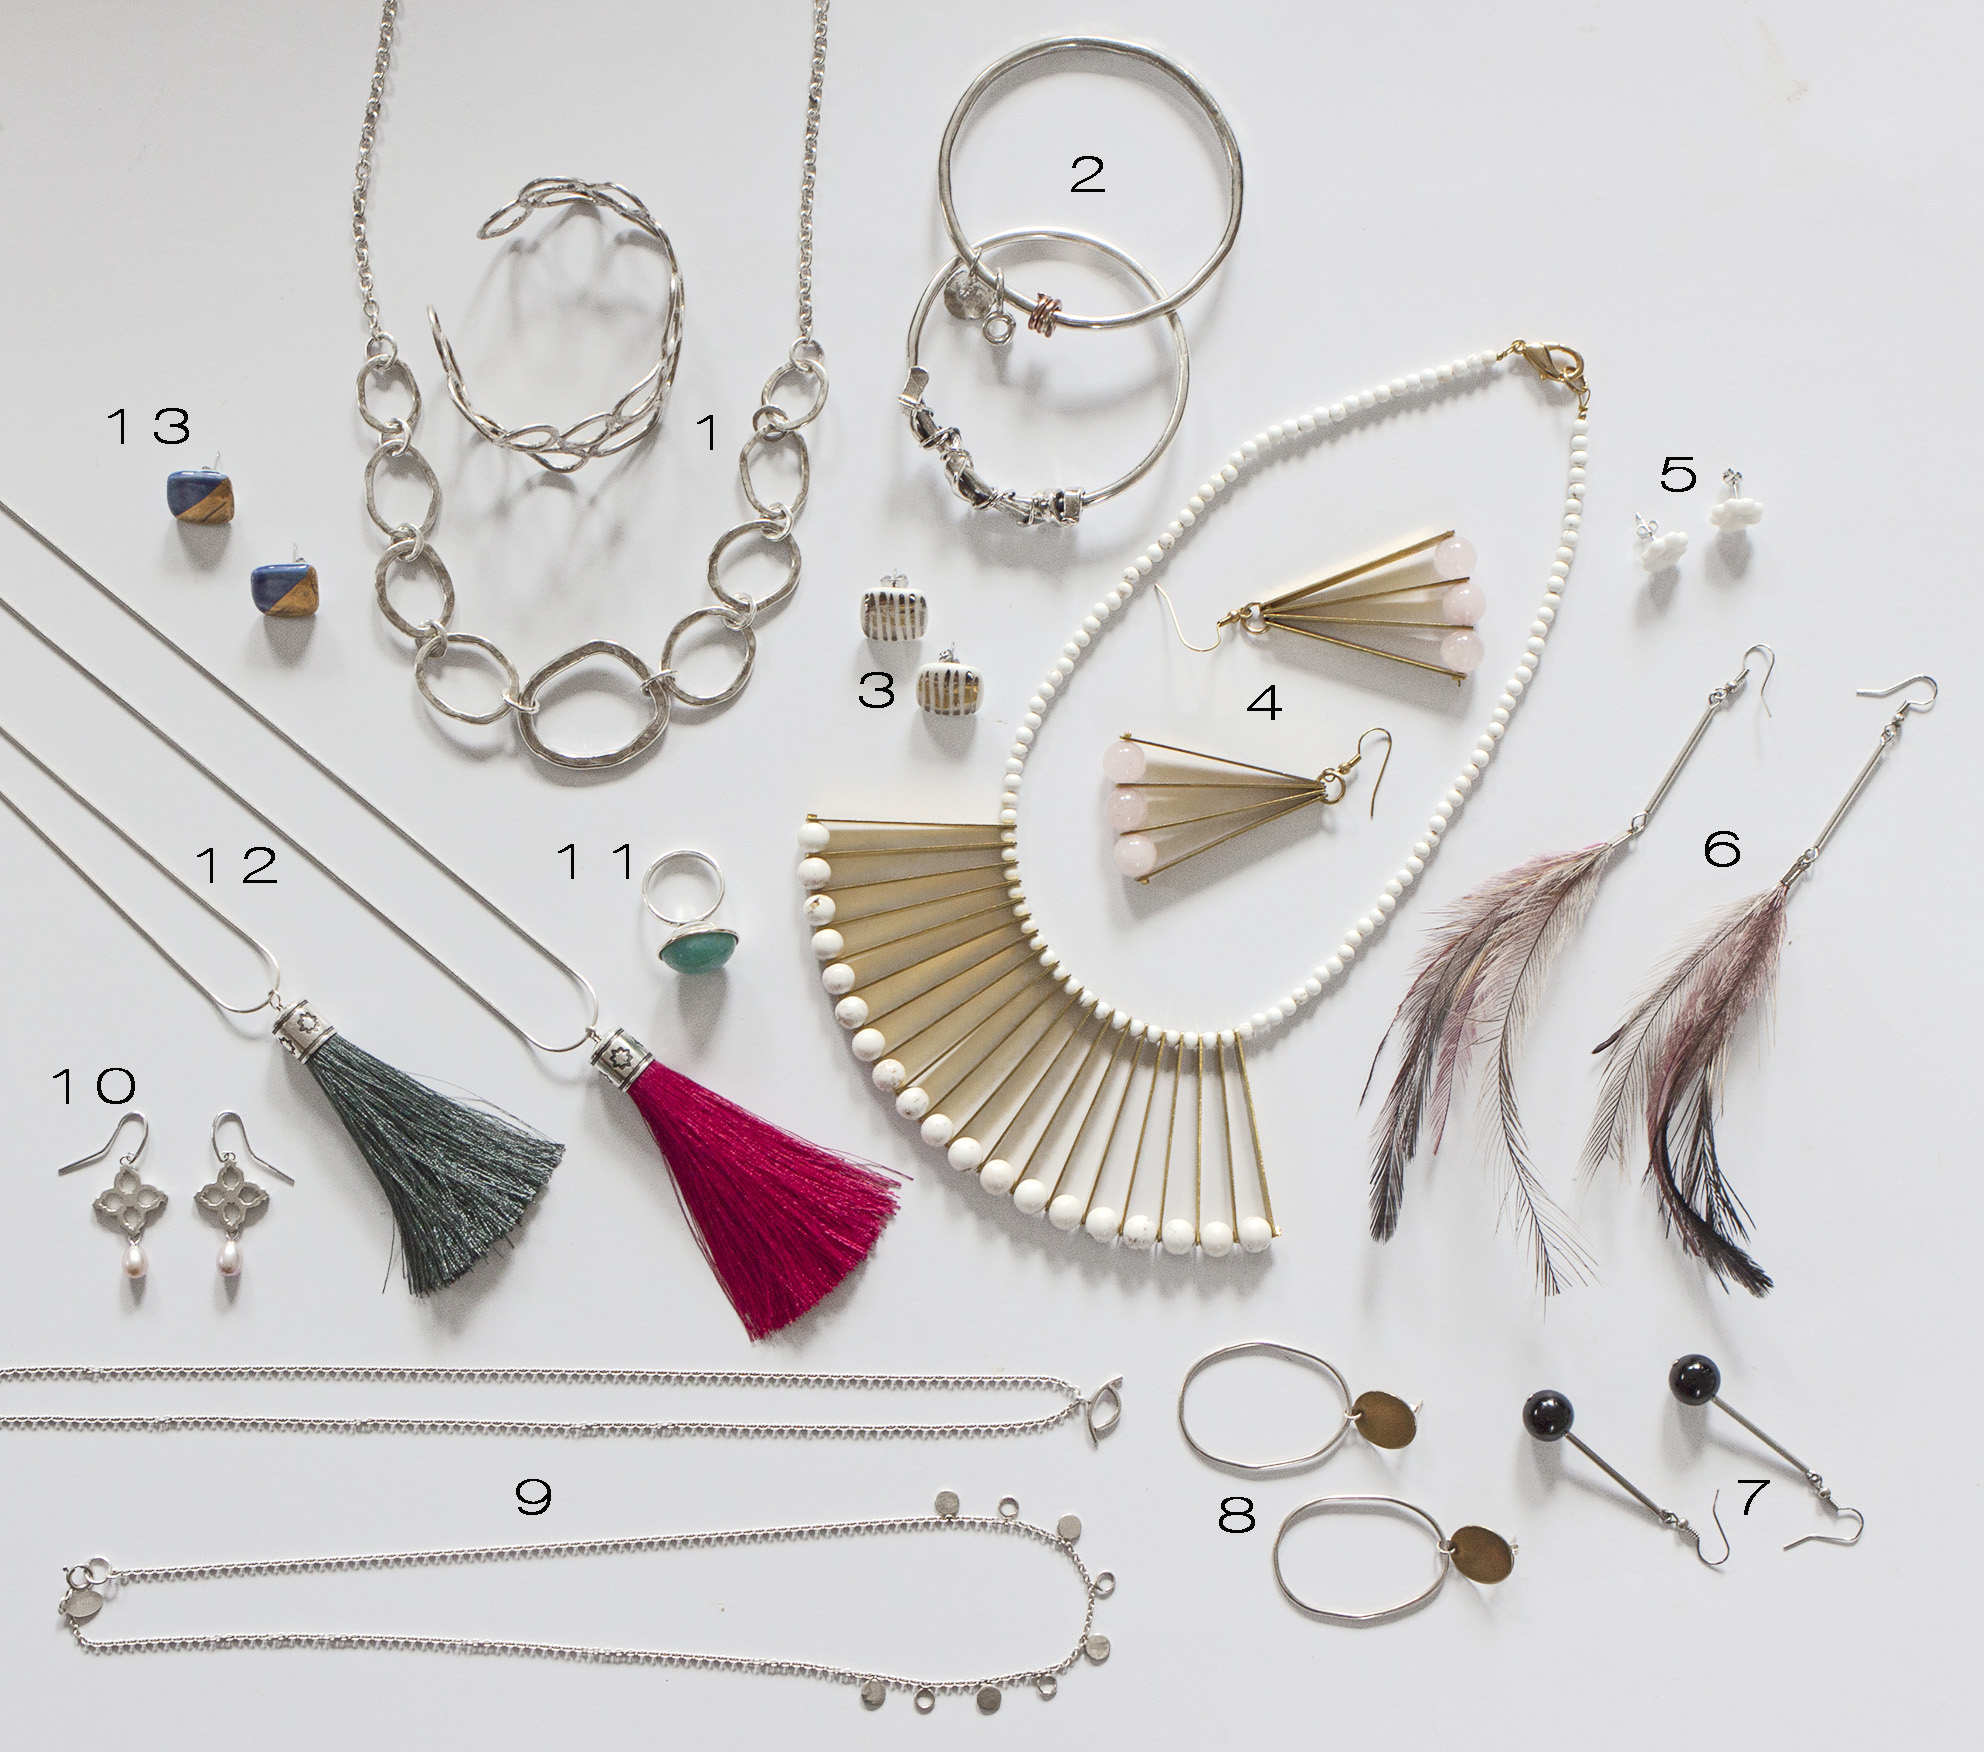 ABOVE 1. Silver Necklace and Bangle by White Rock Silver , 2. Silver Bangles by White Rock Silver , 3. Ceramic Earrings by Amy Burns , 4. Brass and Beaded Jewellery by Madi Young , 5. Ceramic Earrings by Amy Burns , 6. Feather Earrings by Madi Young , 7. Drop Earrings by Madi Young , 8. Silver and Brass Earrings by I Am Jika , 9. Silver Necklaces by I Am Jika , 10. Silver Drop Earrings by A Piece of Work by Cheree , 11. Silver Ring by A Piece of Work by Ceree , 12. Tassel Necklaces by A Piece of Work by Cheree , 13. Ceramic Earrings by Amy Burns .